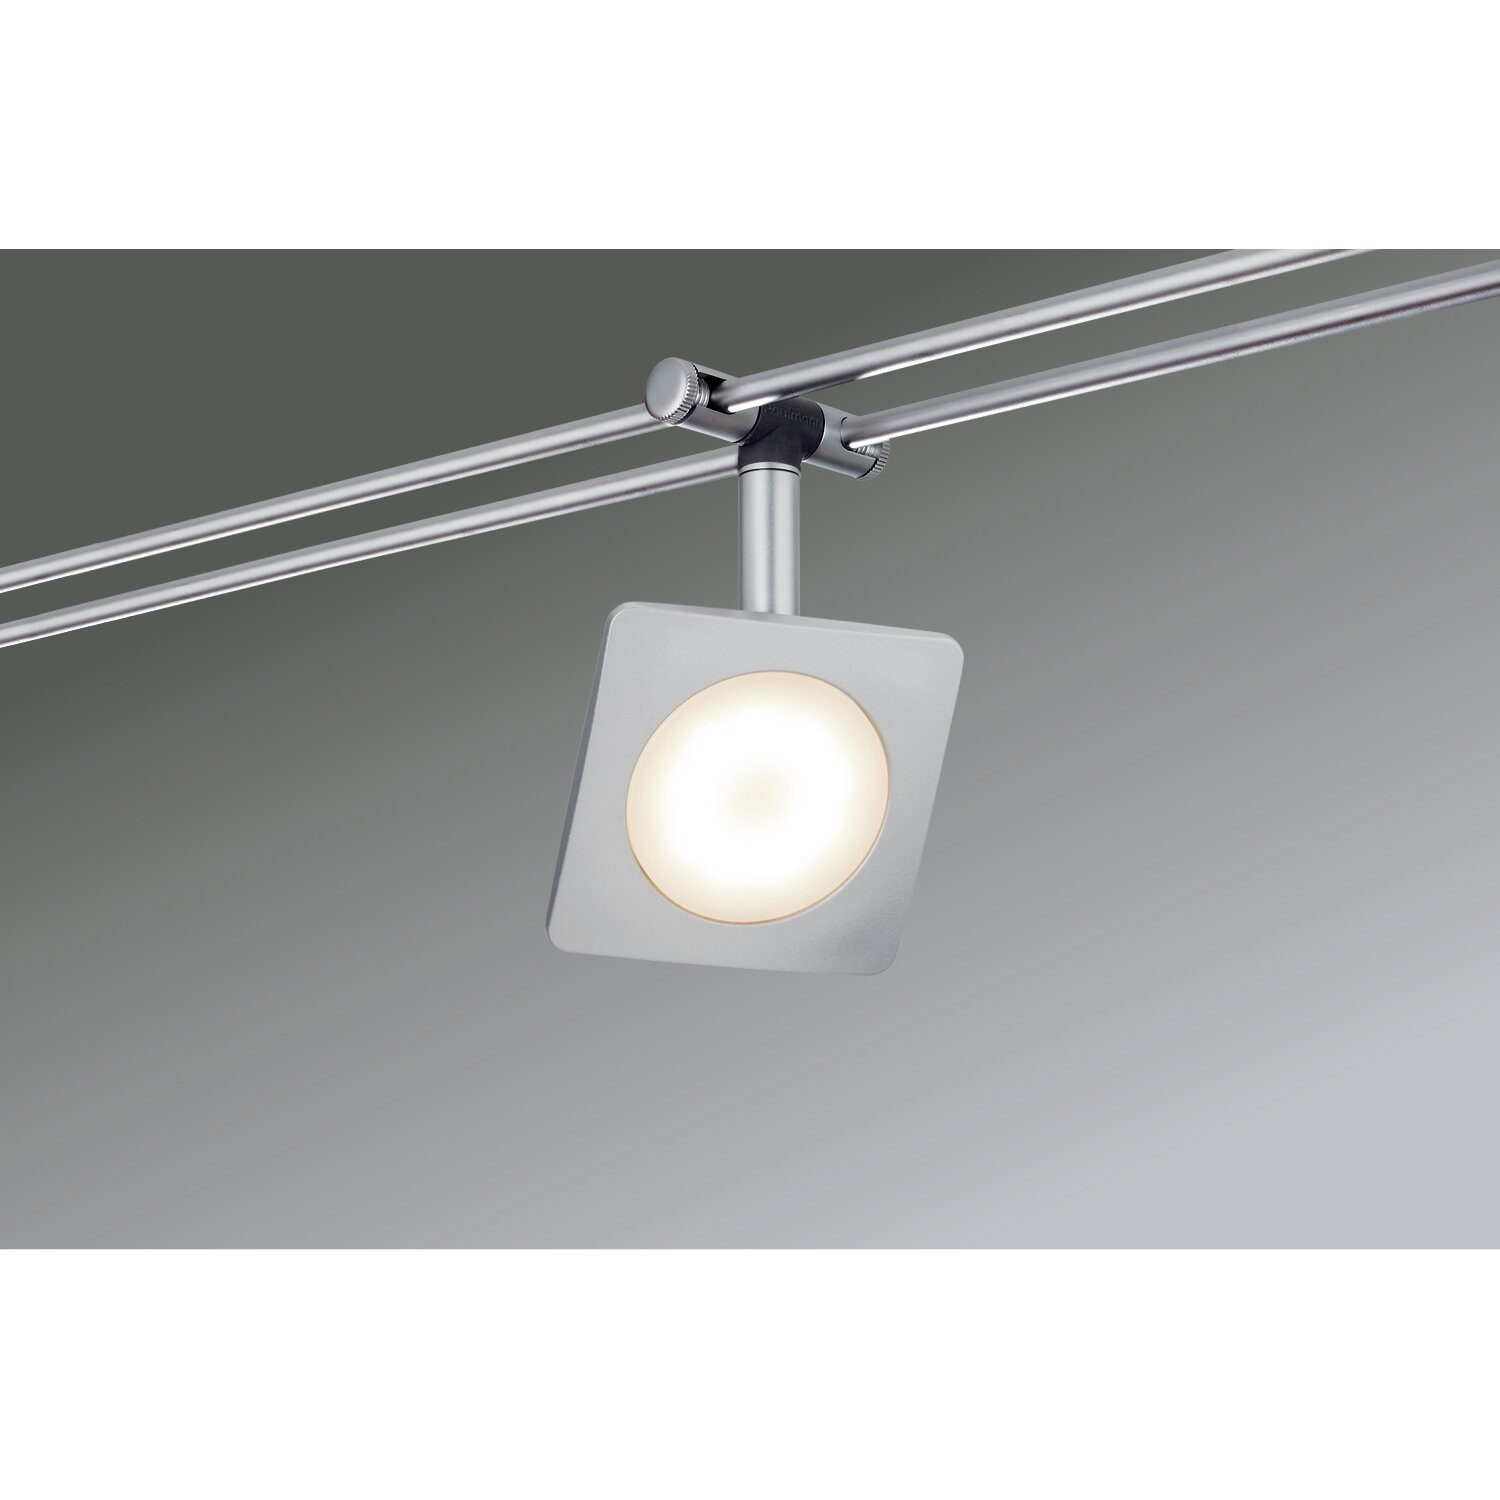 Track Lighting Kit Uk: Paulmann QuadLED 4 Light Complete Track Light Kit